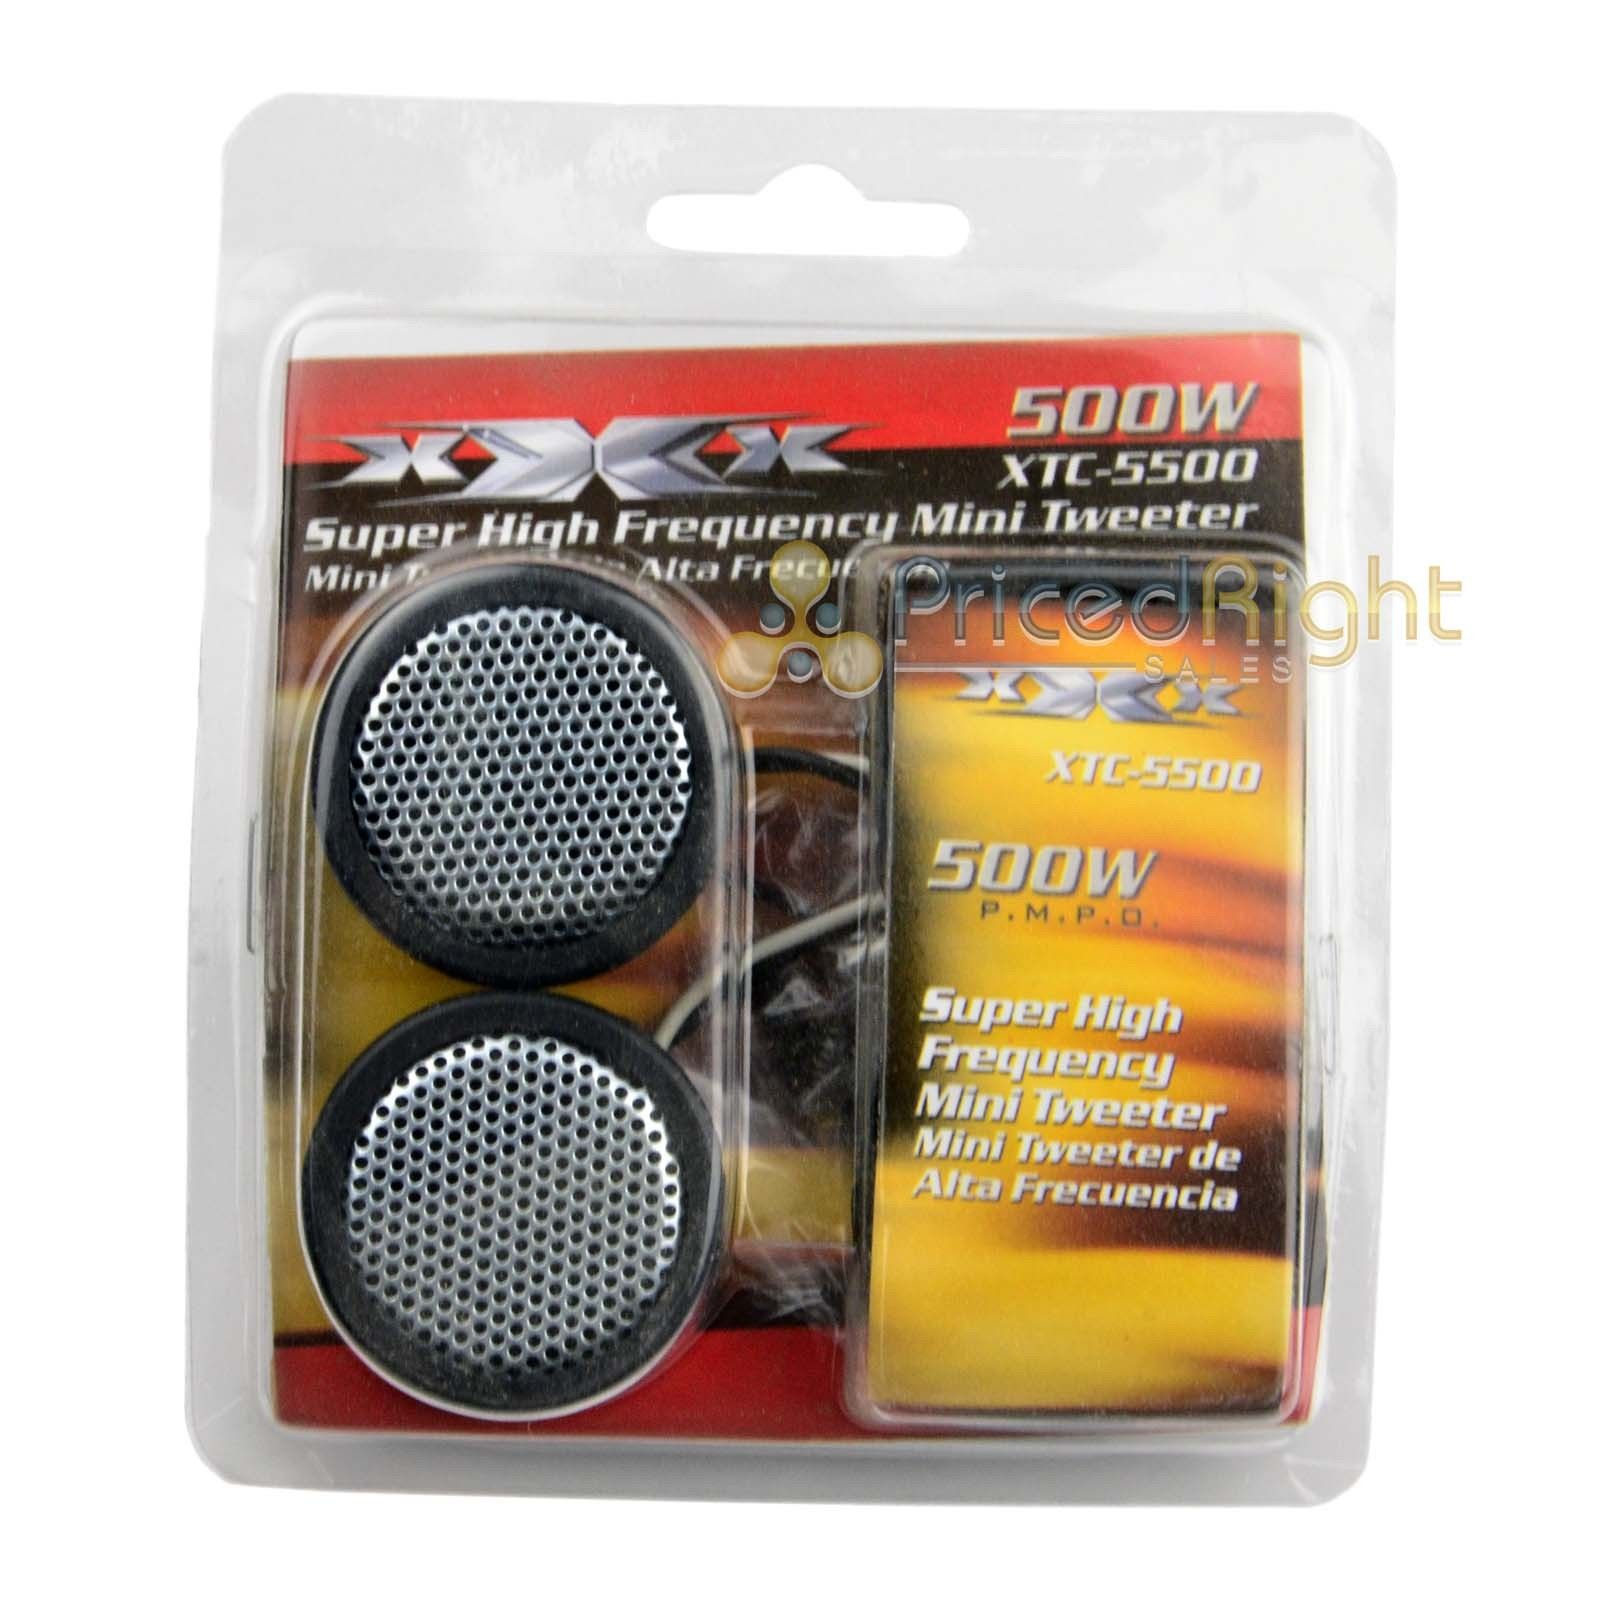 Two Pairs of Super High Frequency 500 Watt XTC-5500 Car Audio Tweeters XTC5500